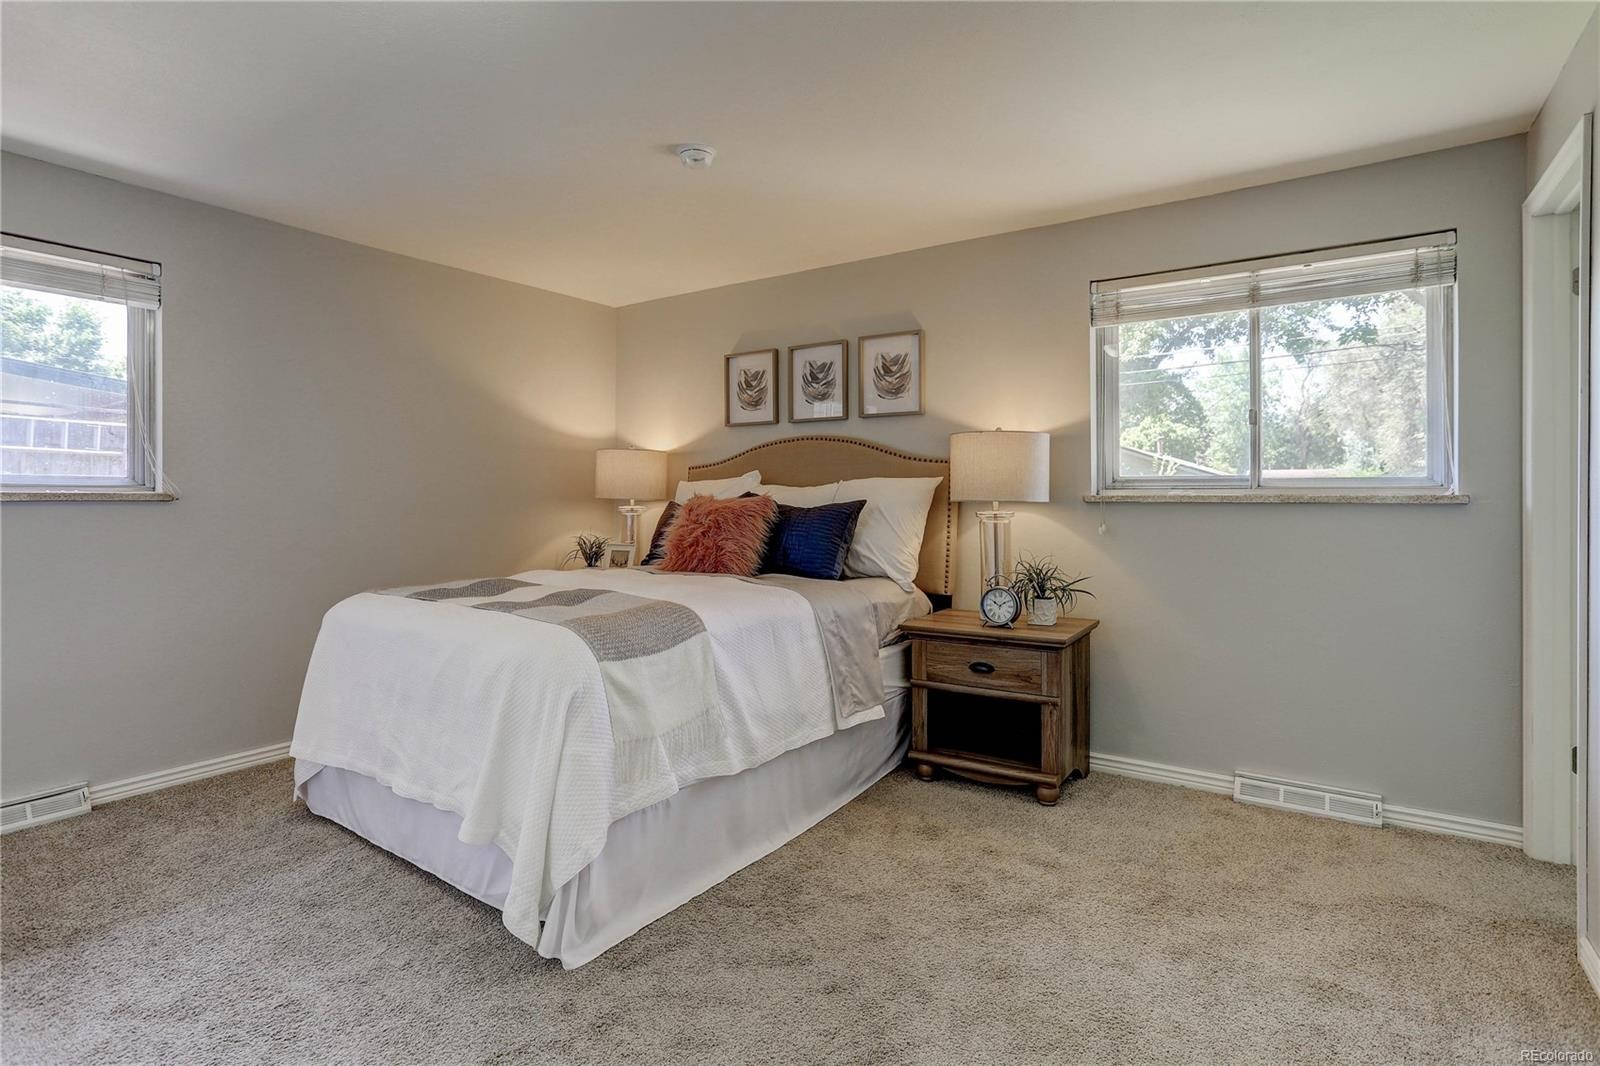 MLS# 2968148 - 15 - 2931 S Downing Street, Englewood, CO 80113